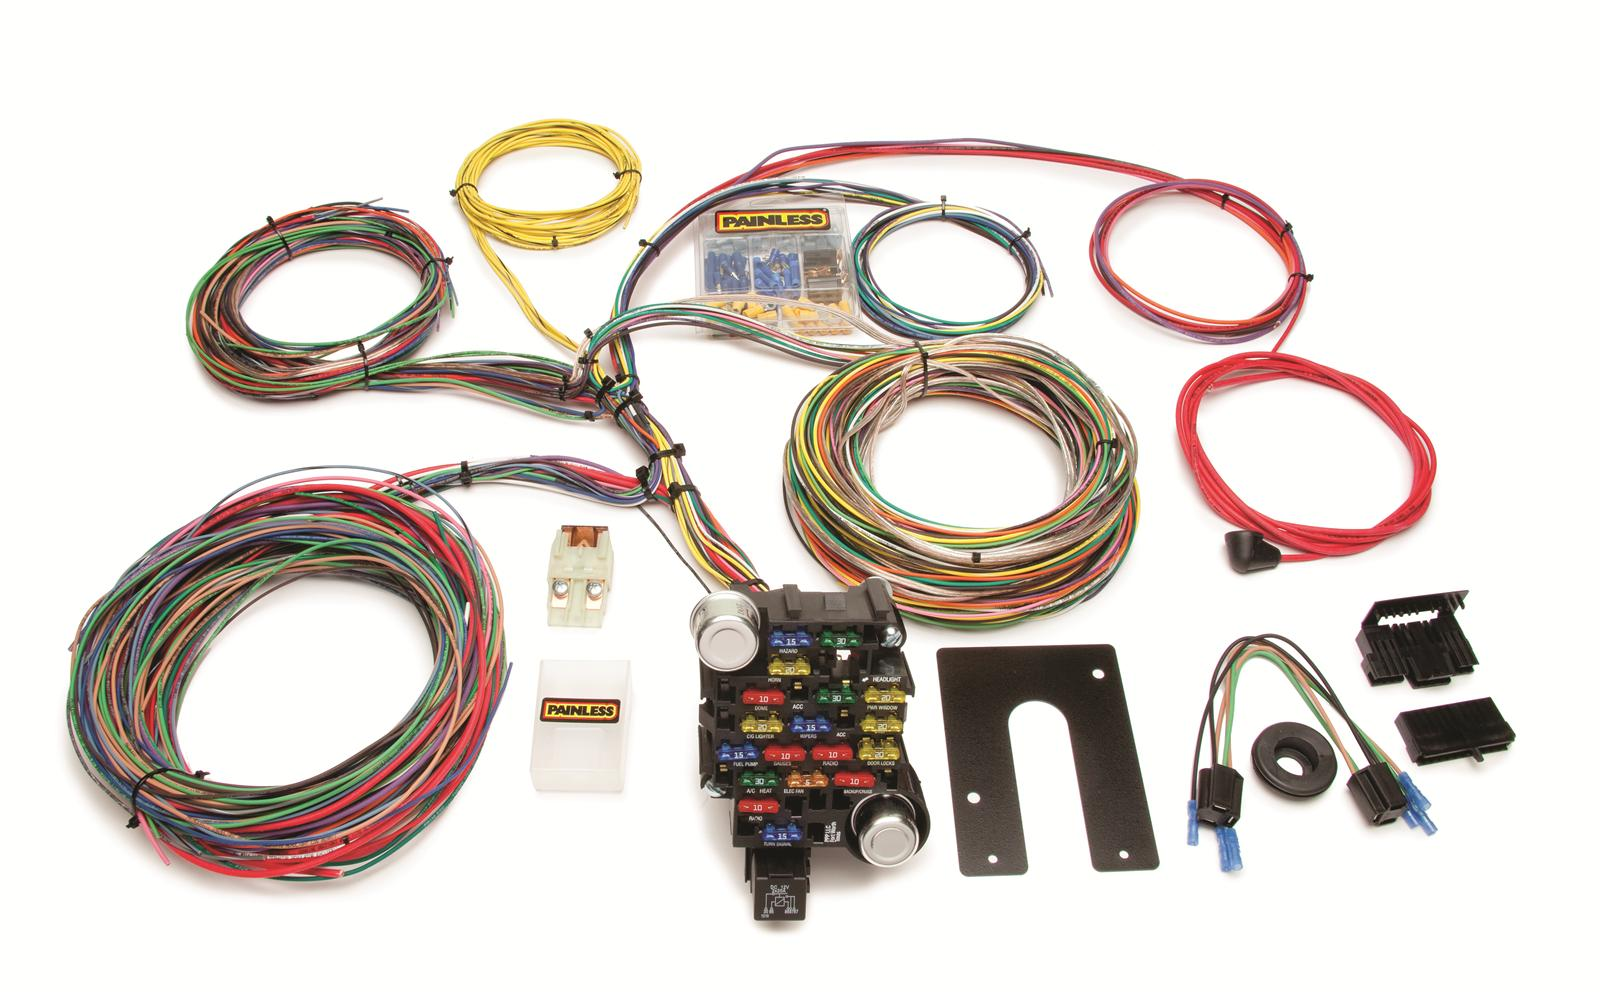 painless performance 28 circuit universal harnesses 10202 free rh summitracing com Painless Wiring Installation Manual Painless Wiring for Old Cars and Trucks